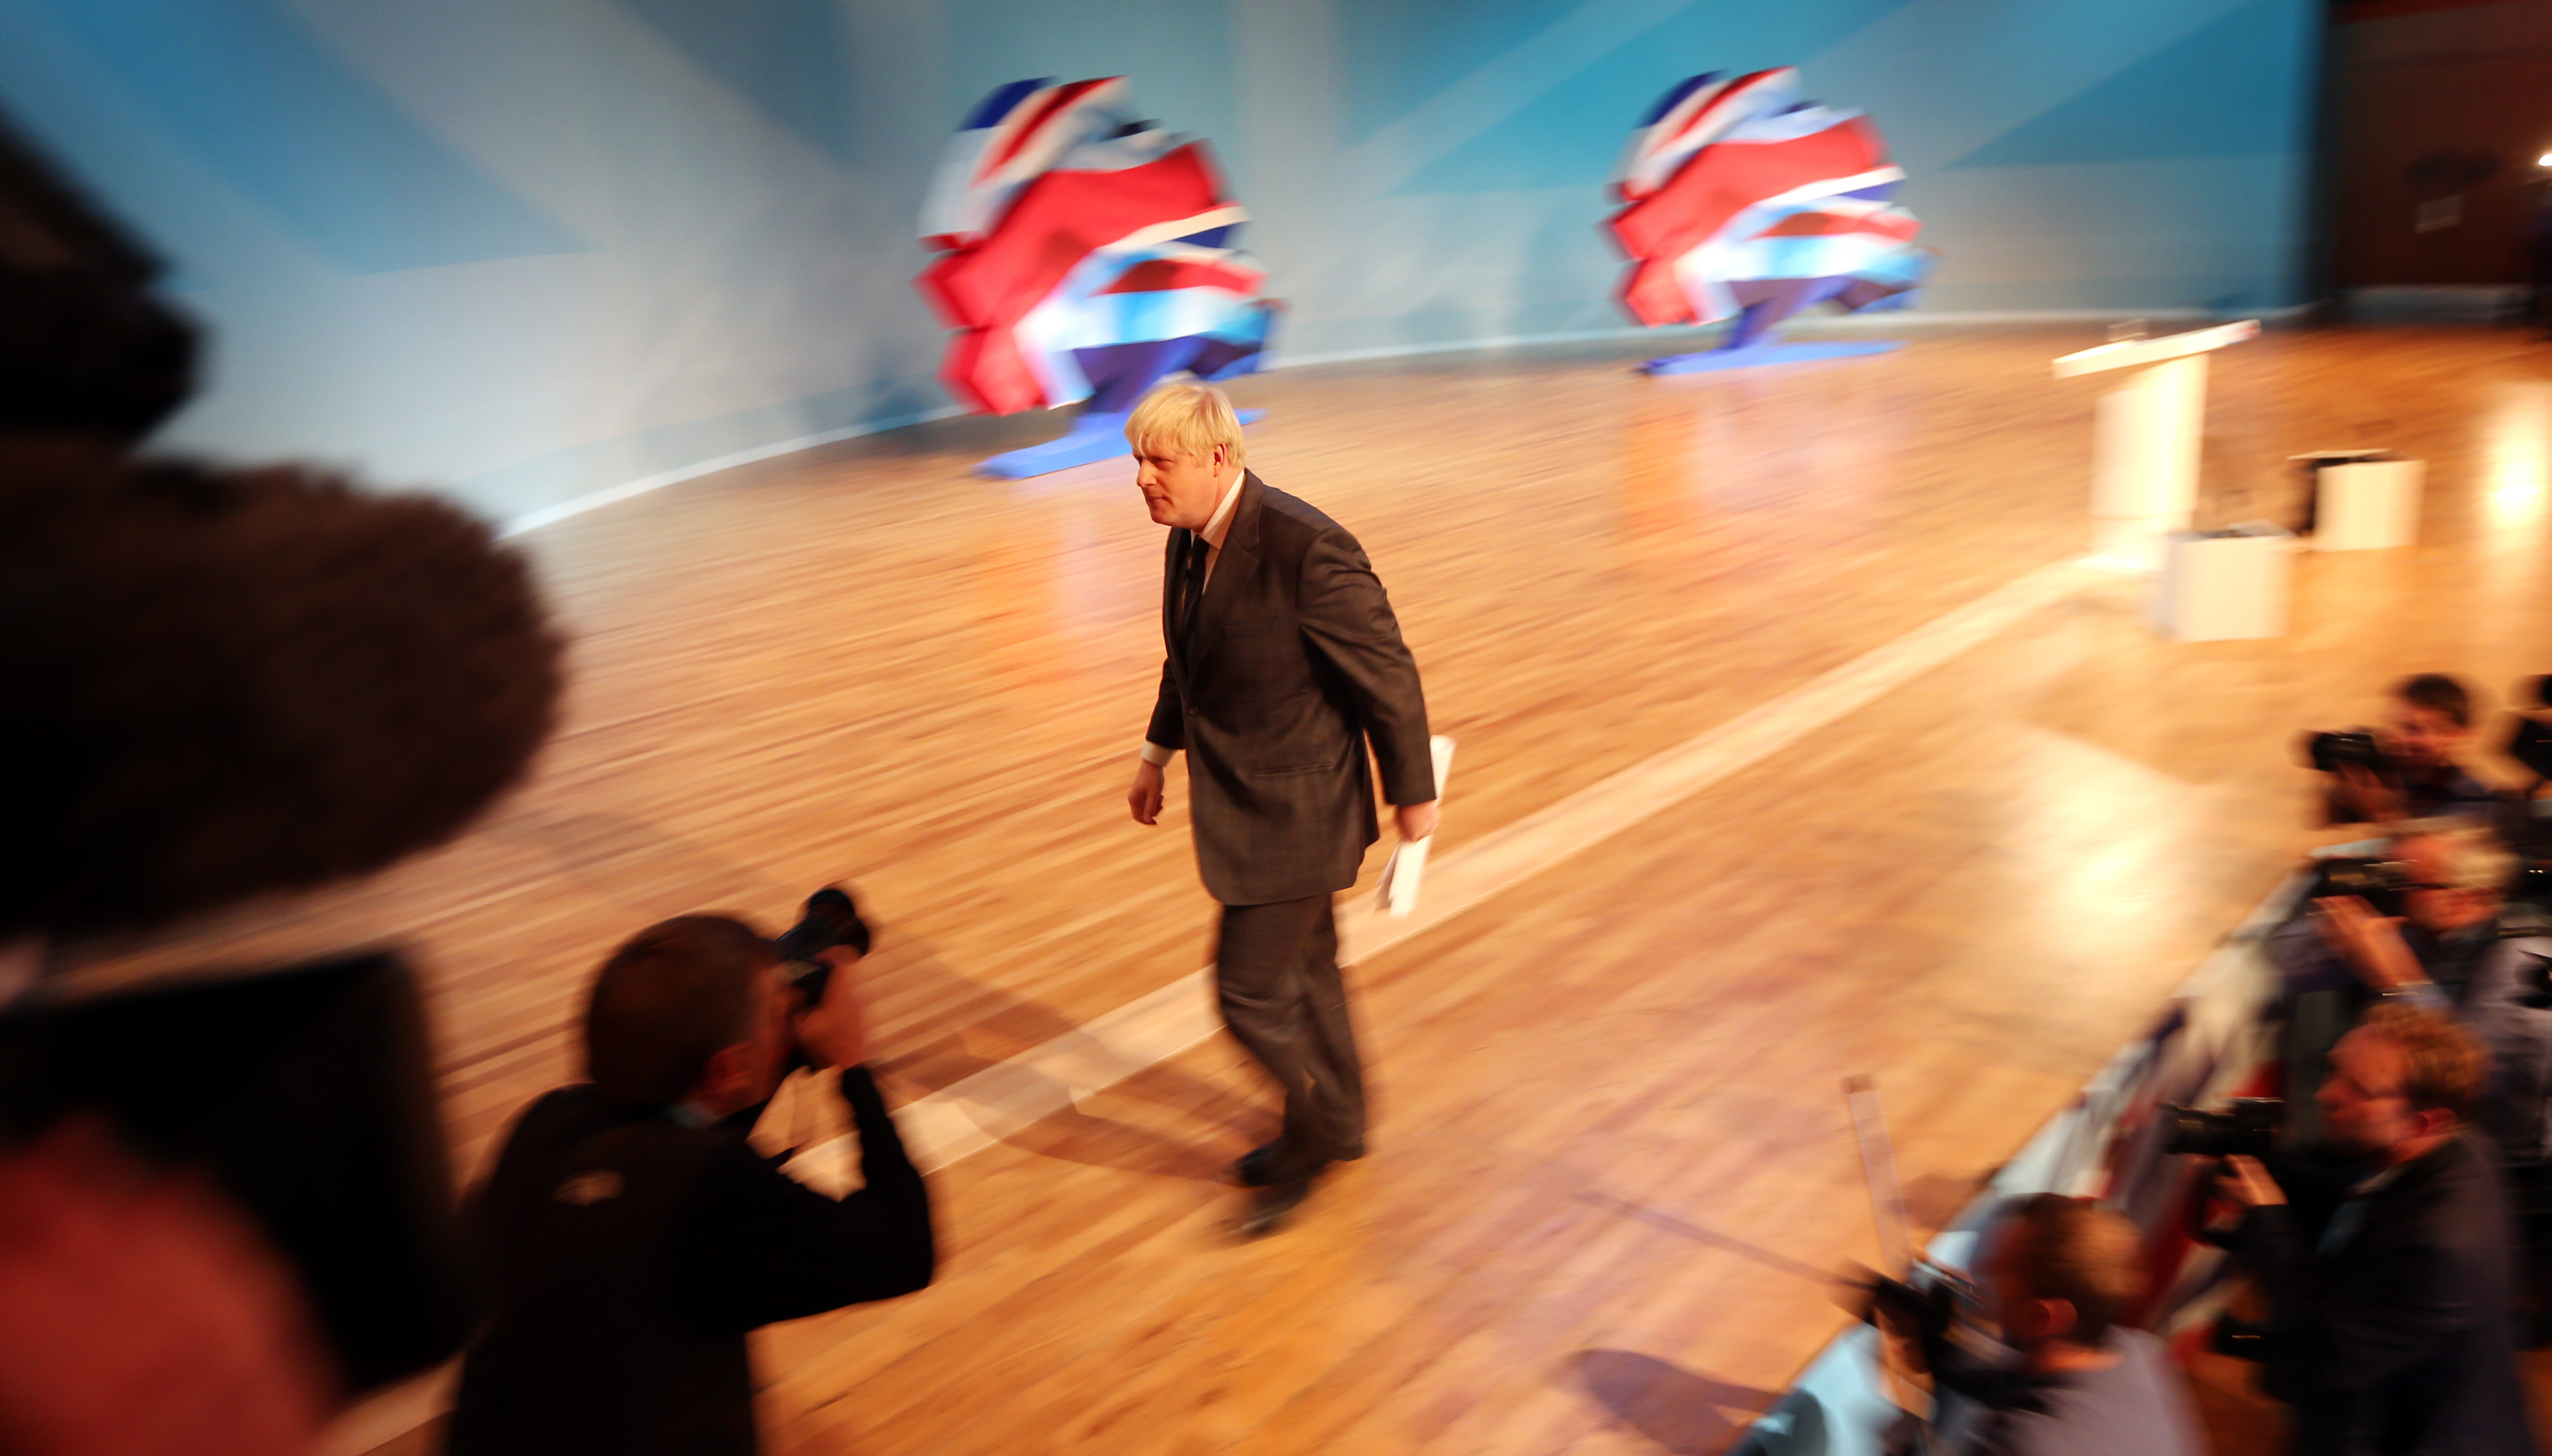 Mayor of London Boris Johnson leaves the stage after addressing the Conservative Party conference at the International Convention Centre in Birmingham.